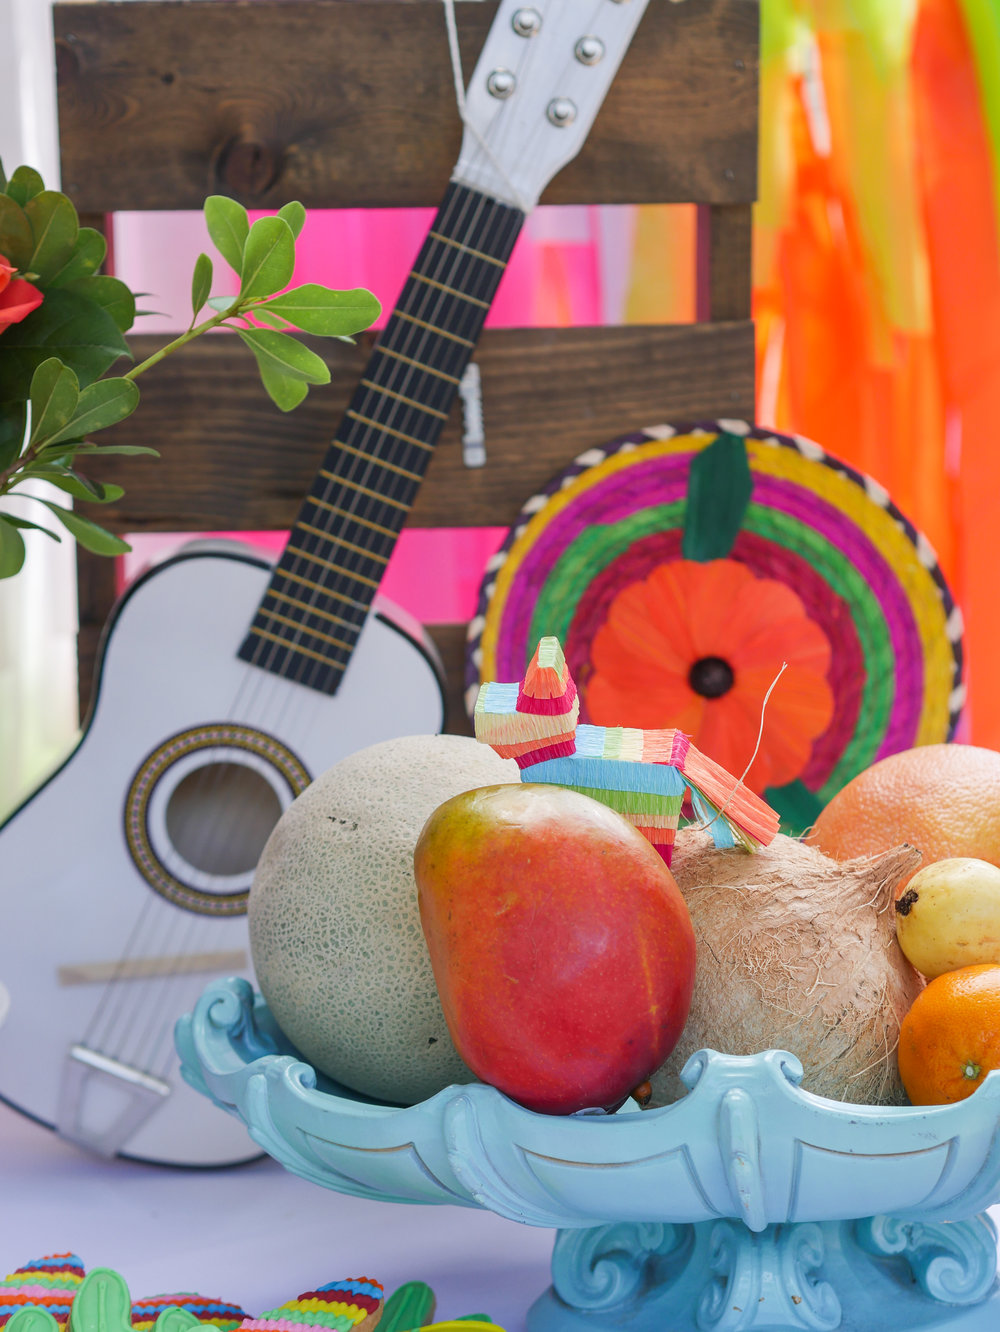 Fiesta Party Planning Tip: Create edible displays as party decor. This Coco inspired birthday party features mini guitars like the one in the movie along with fresh fruits and vegetables. Party Styling by Austin Texas party planner Mint Event Design www.minteventdesign.com #kidsbirthdayparty #fiestaparty #disneycoco #partyideas #girlbirthdayparty #cocobirthdayparty